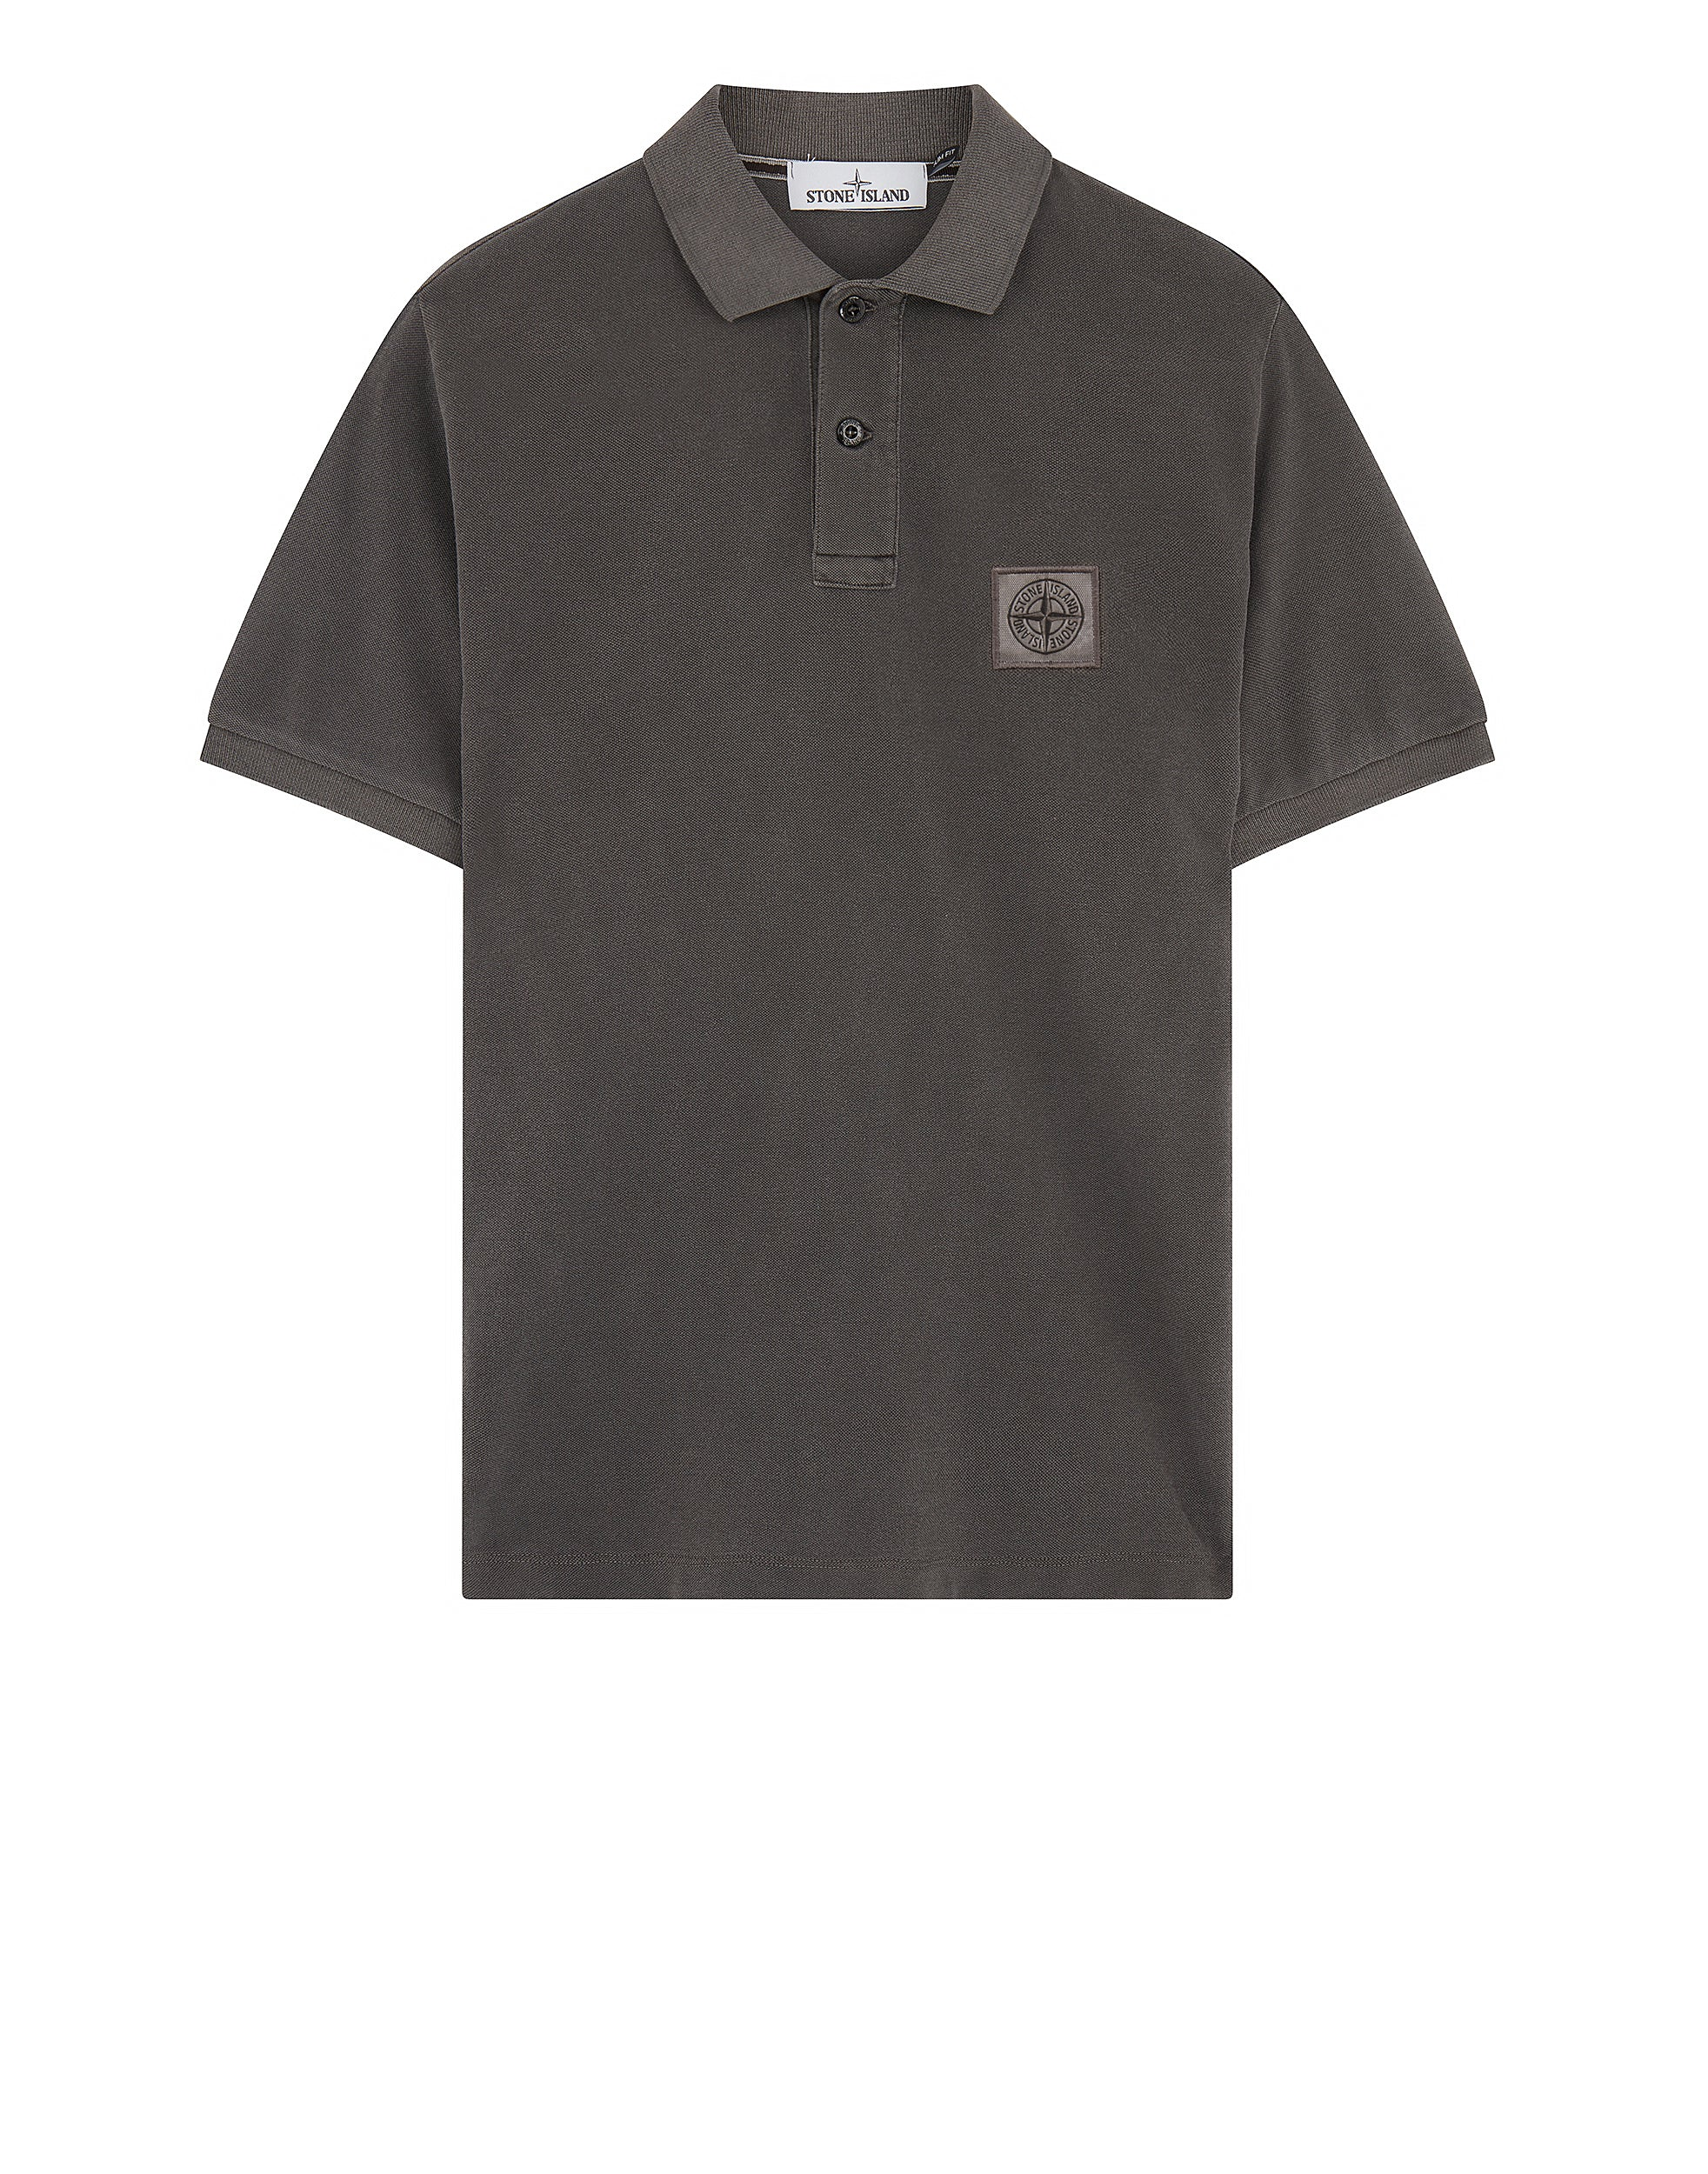 22S67 PIGMENT DYE Polo Shirt in Charcoal